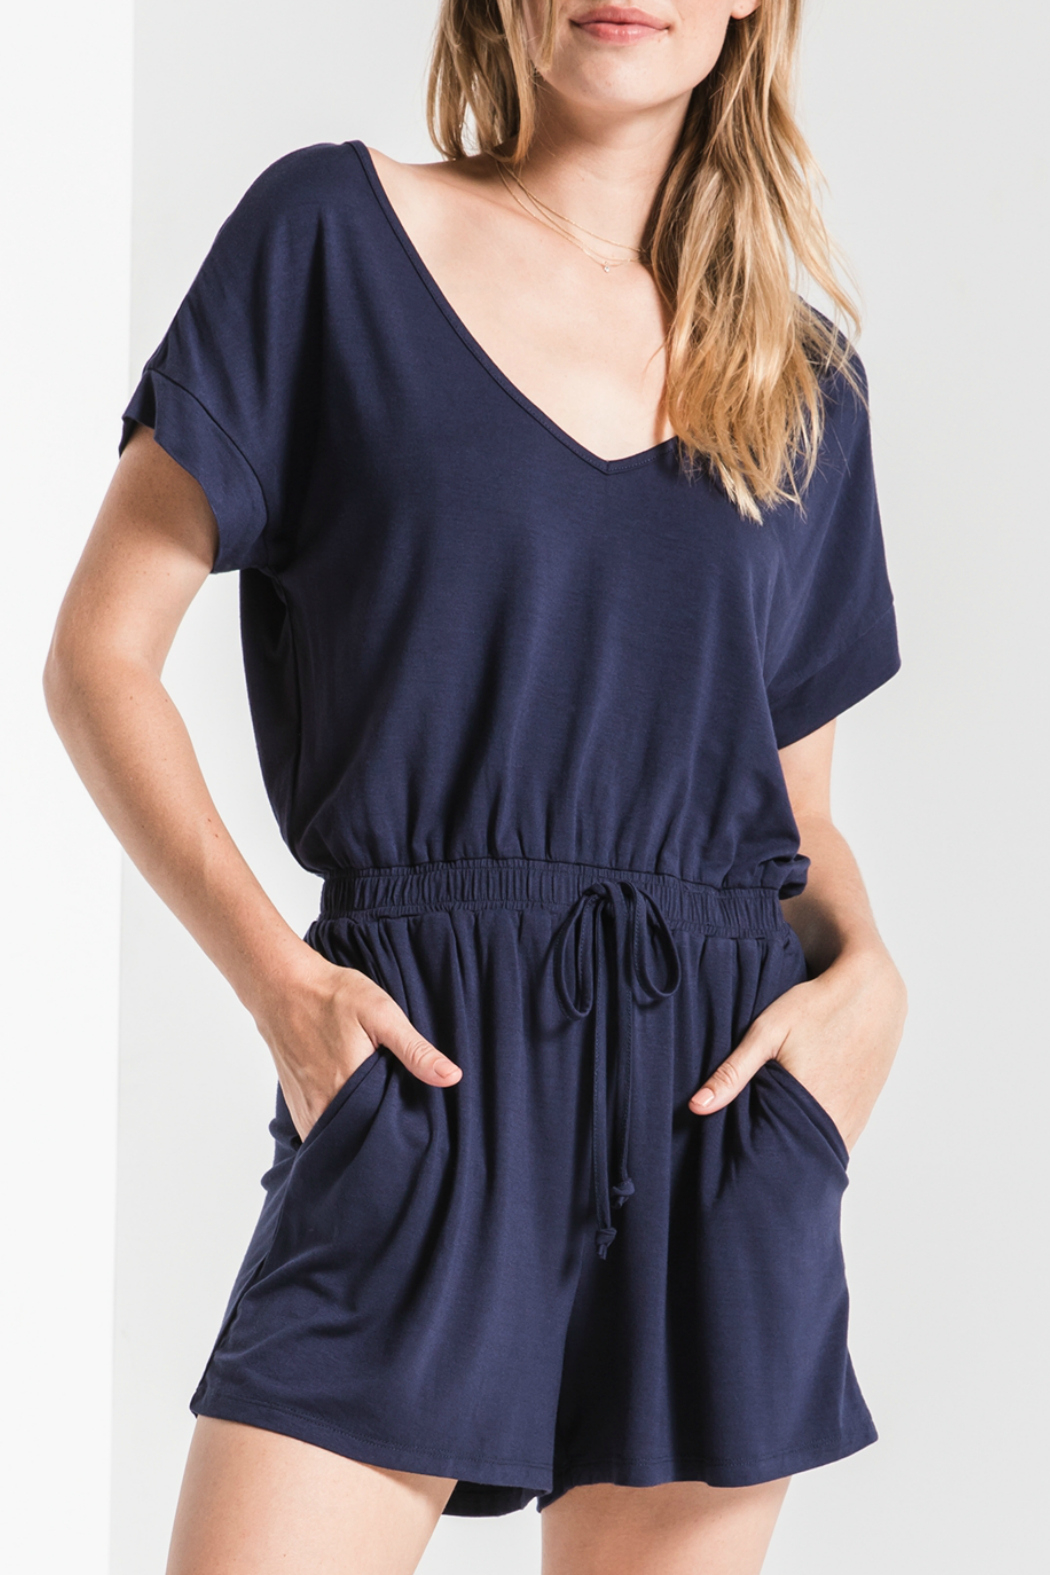 z supply Blaire Sleek Jersey Romper - Main Image